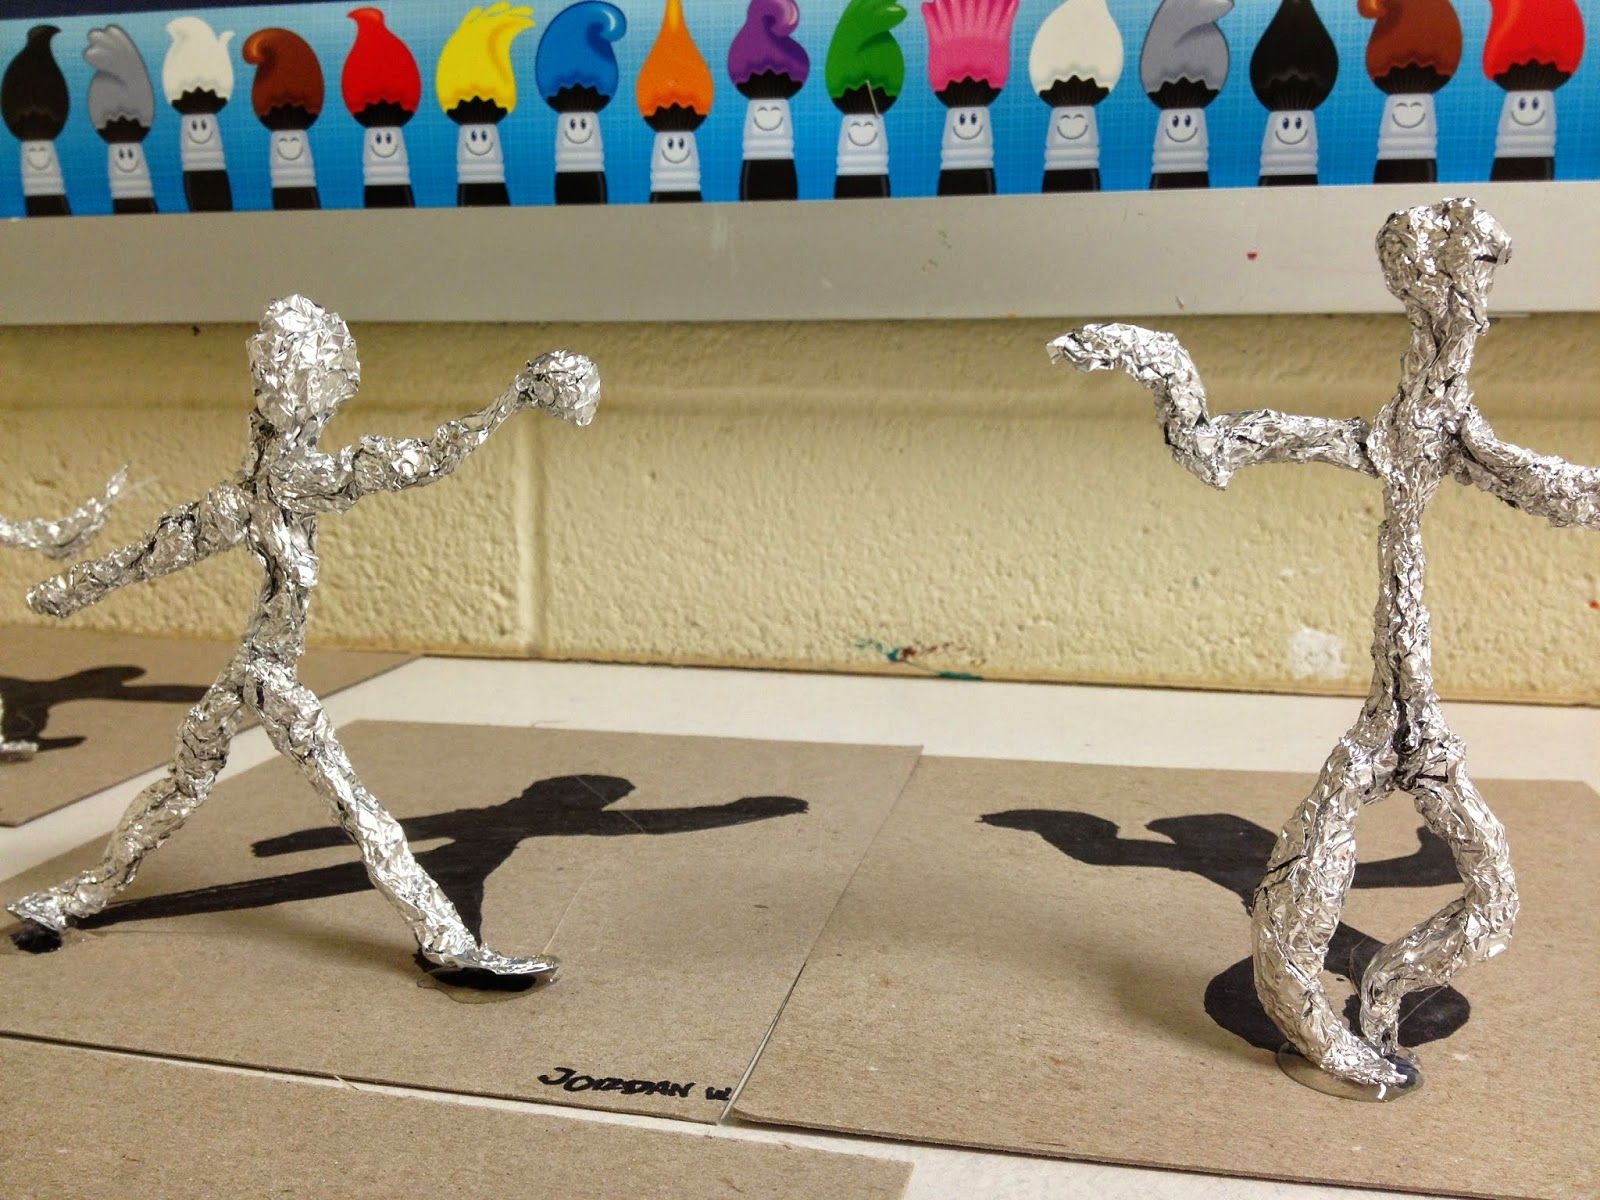 Gesture Drawing And Foil Figures With Images